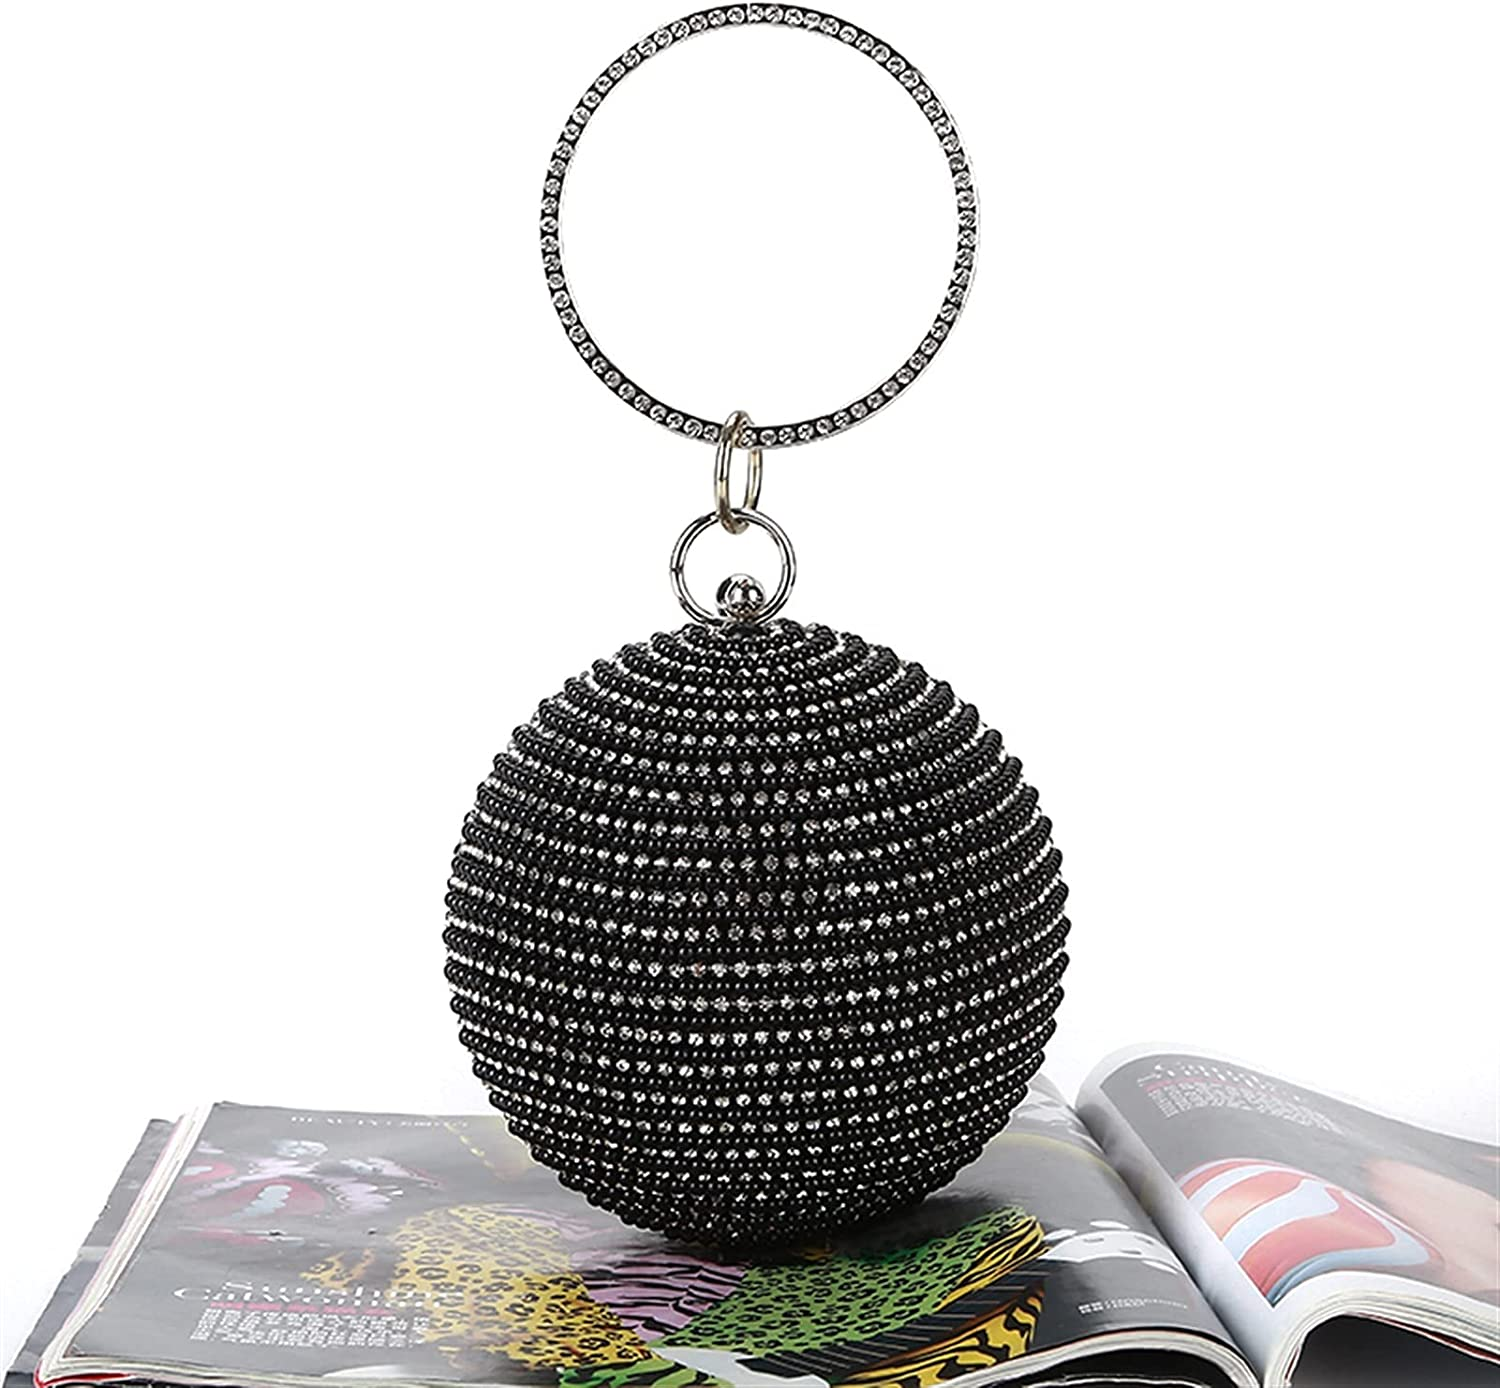 ATHH Clutch Purses for Women Evening,Round Ball Handbag Artificial Pearl Purse Lady Party Wedding Bag,Ring Handle Purse